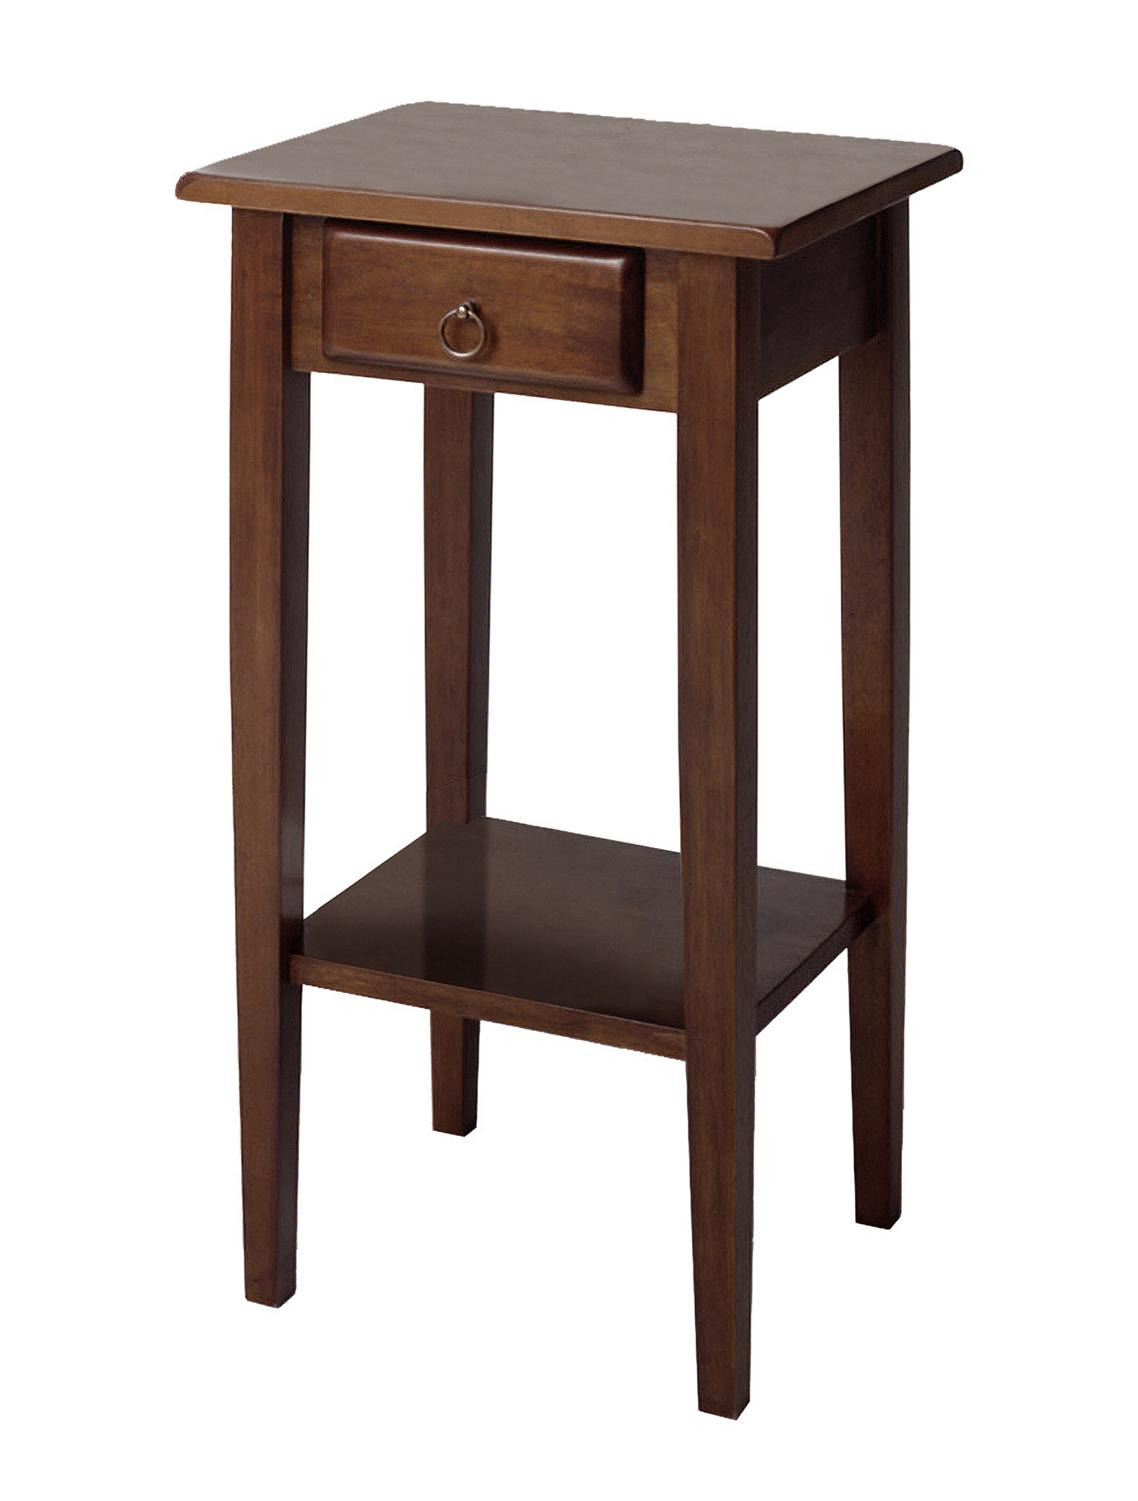 winsome regalia accent table with drawer shelf home goods daniel black finish round drawers top legs side white ballard designs furniture outdoor cover small desks for spaces best